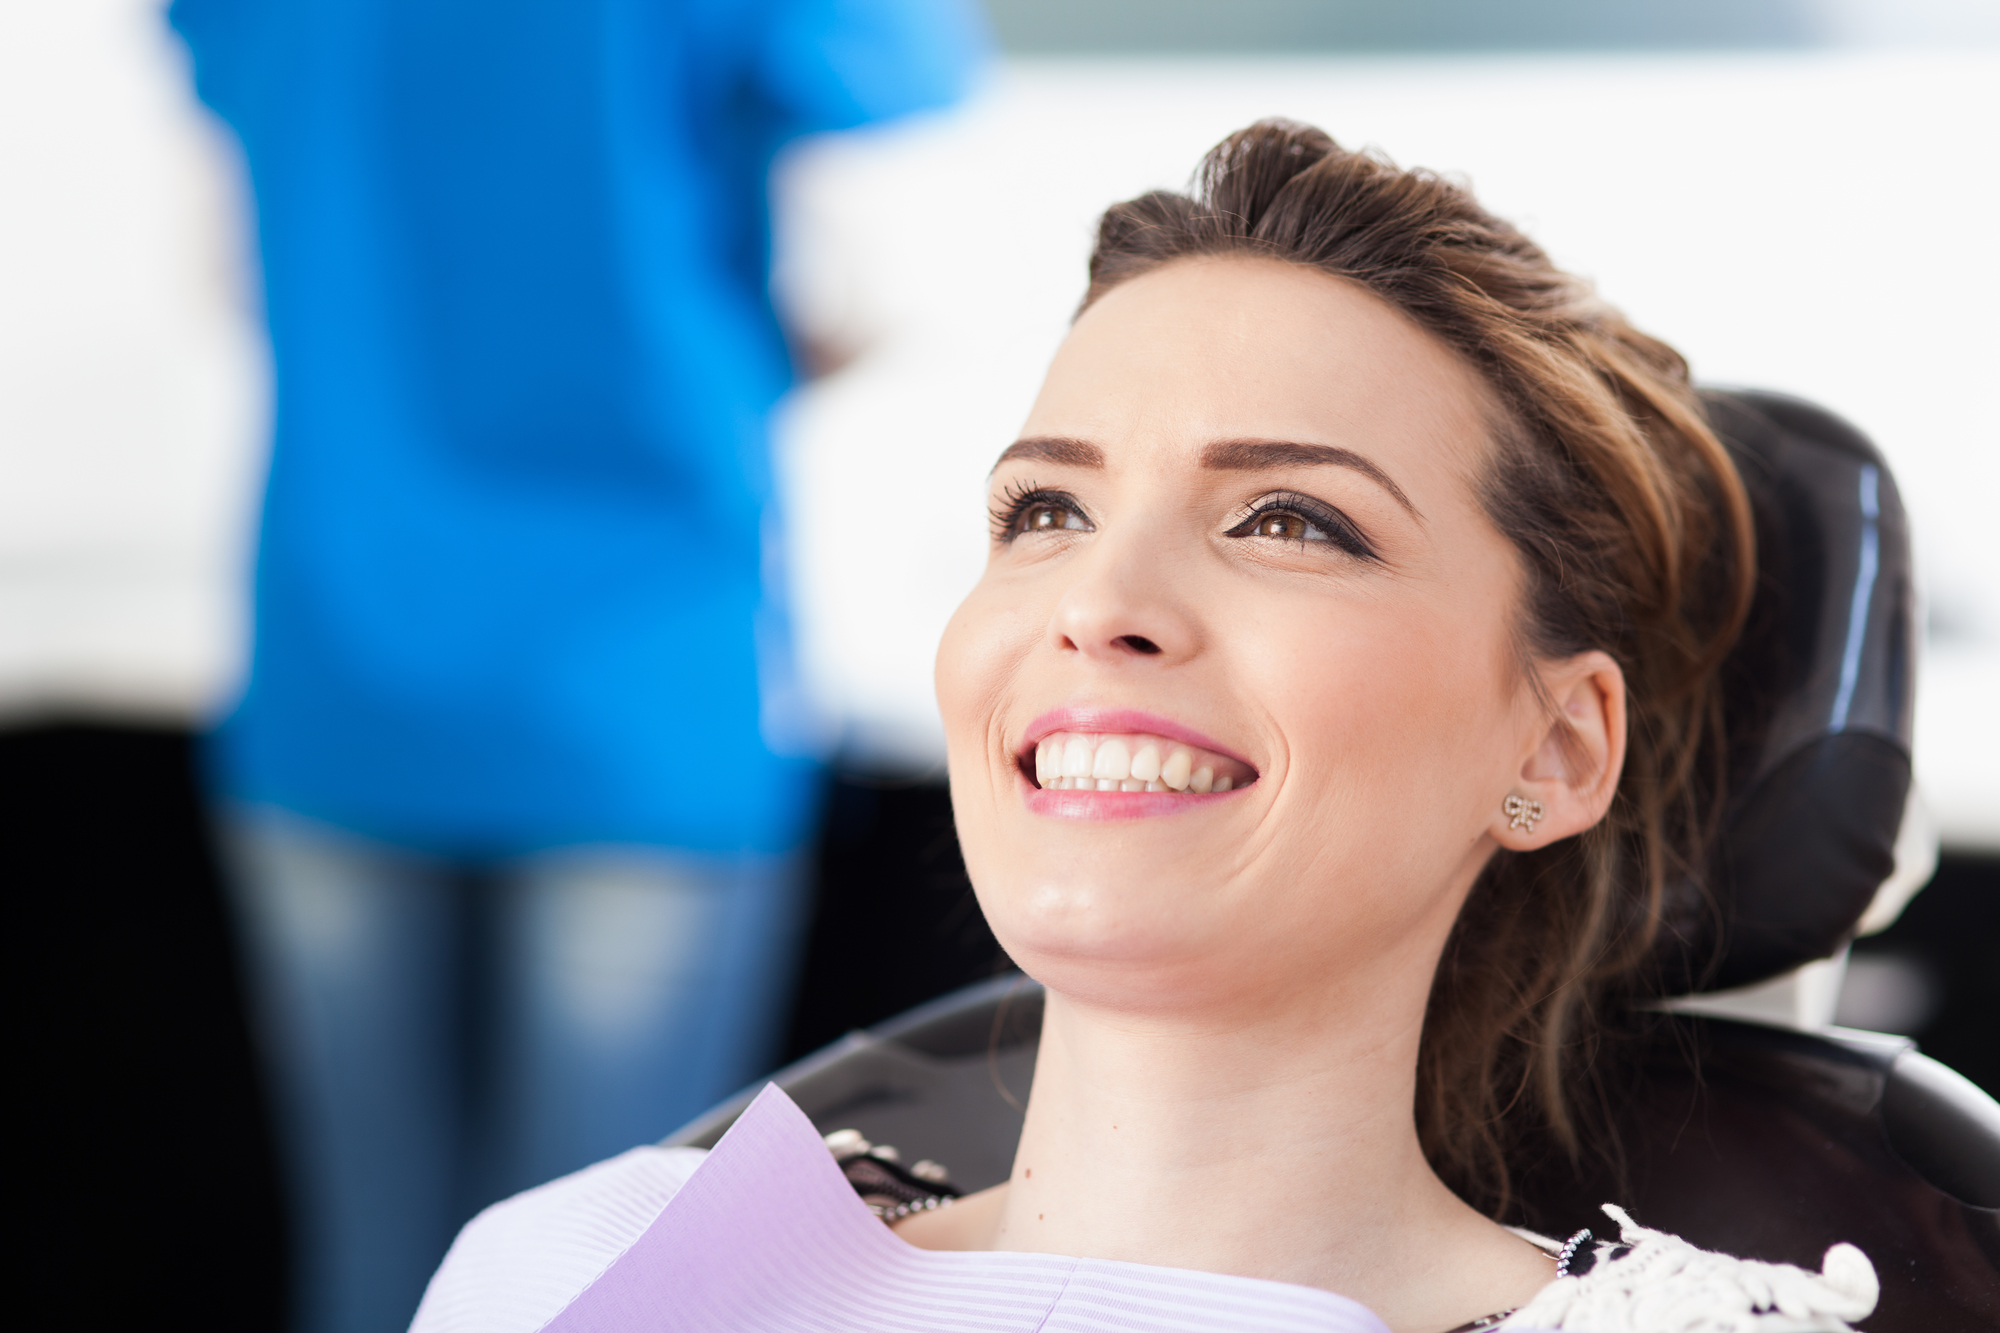 who is the best dentist windermere?